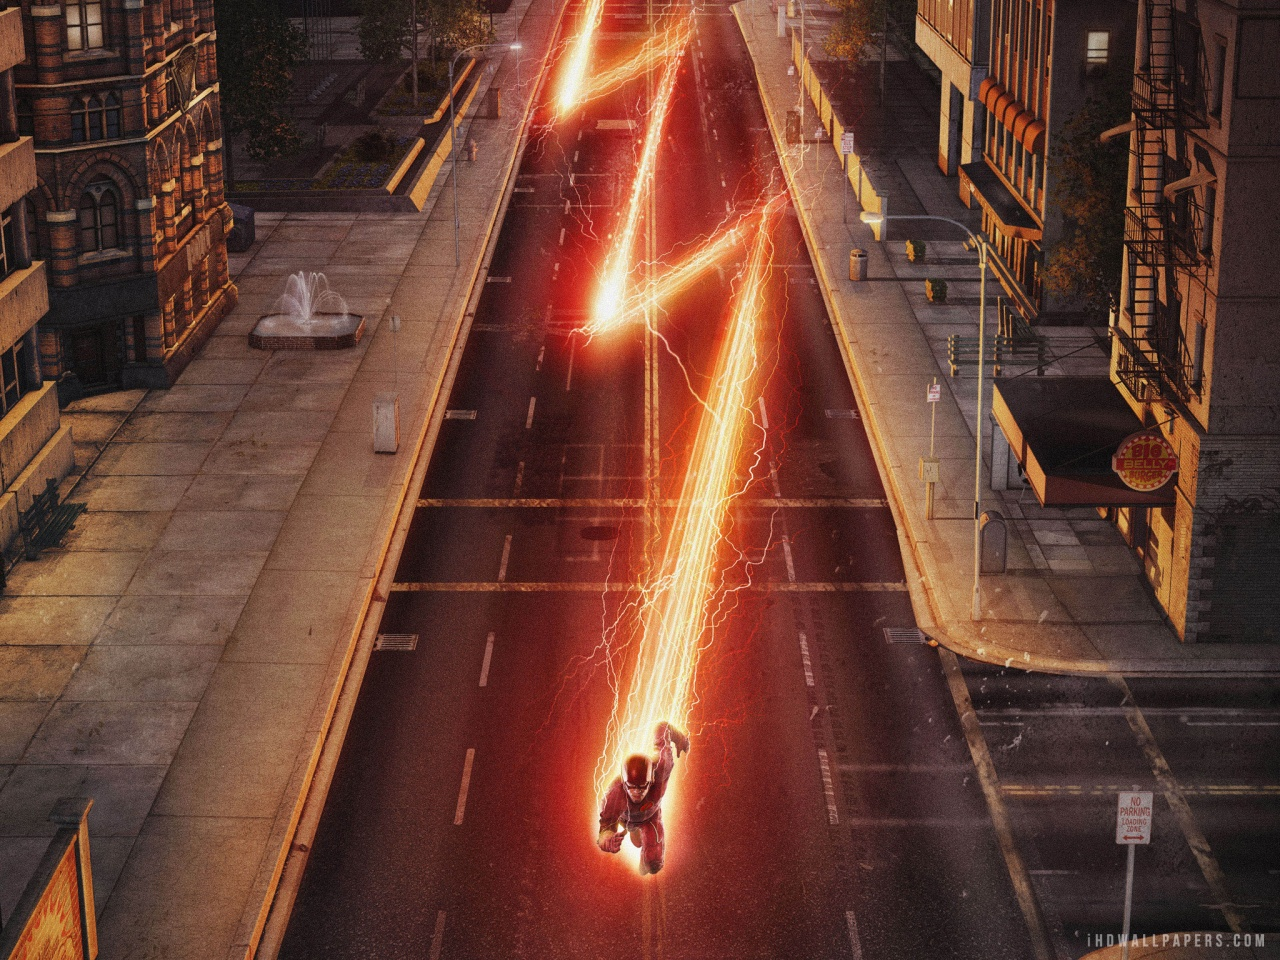 Image Cw The Flash Tv Series 2014 Download 1280x960